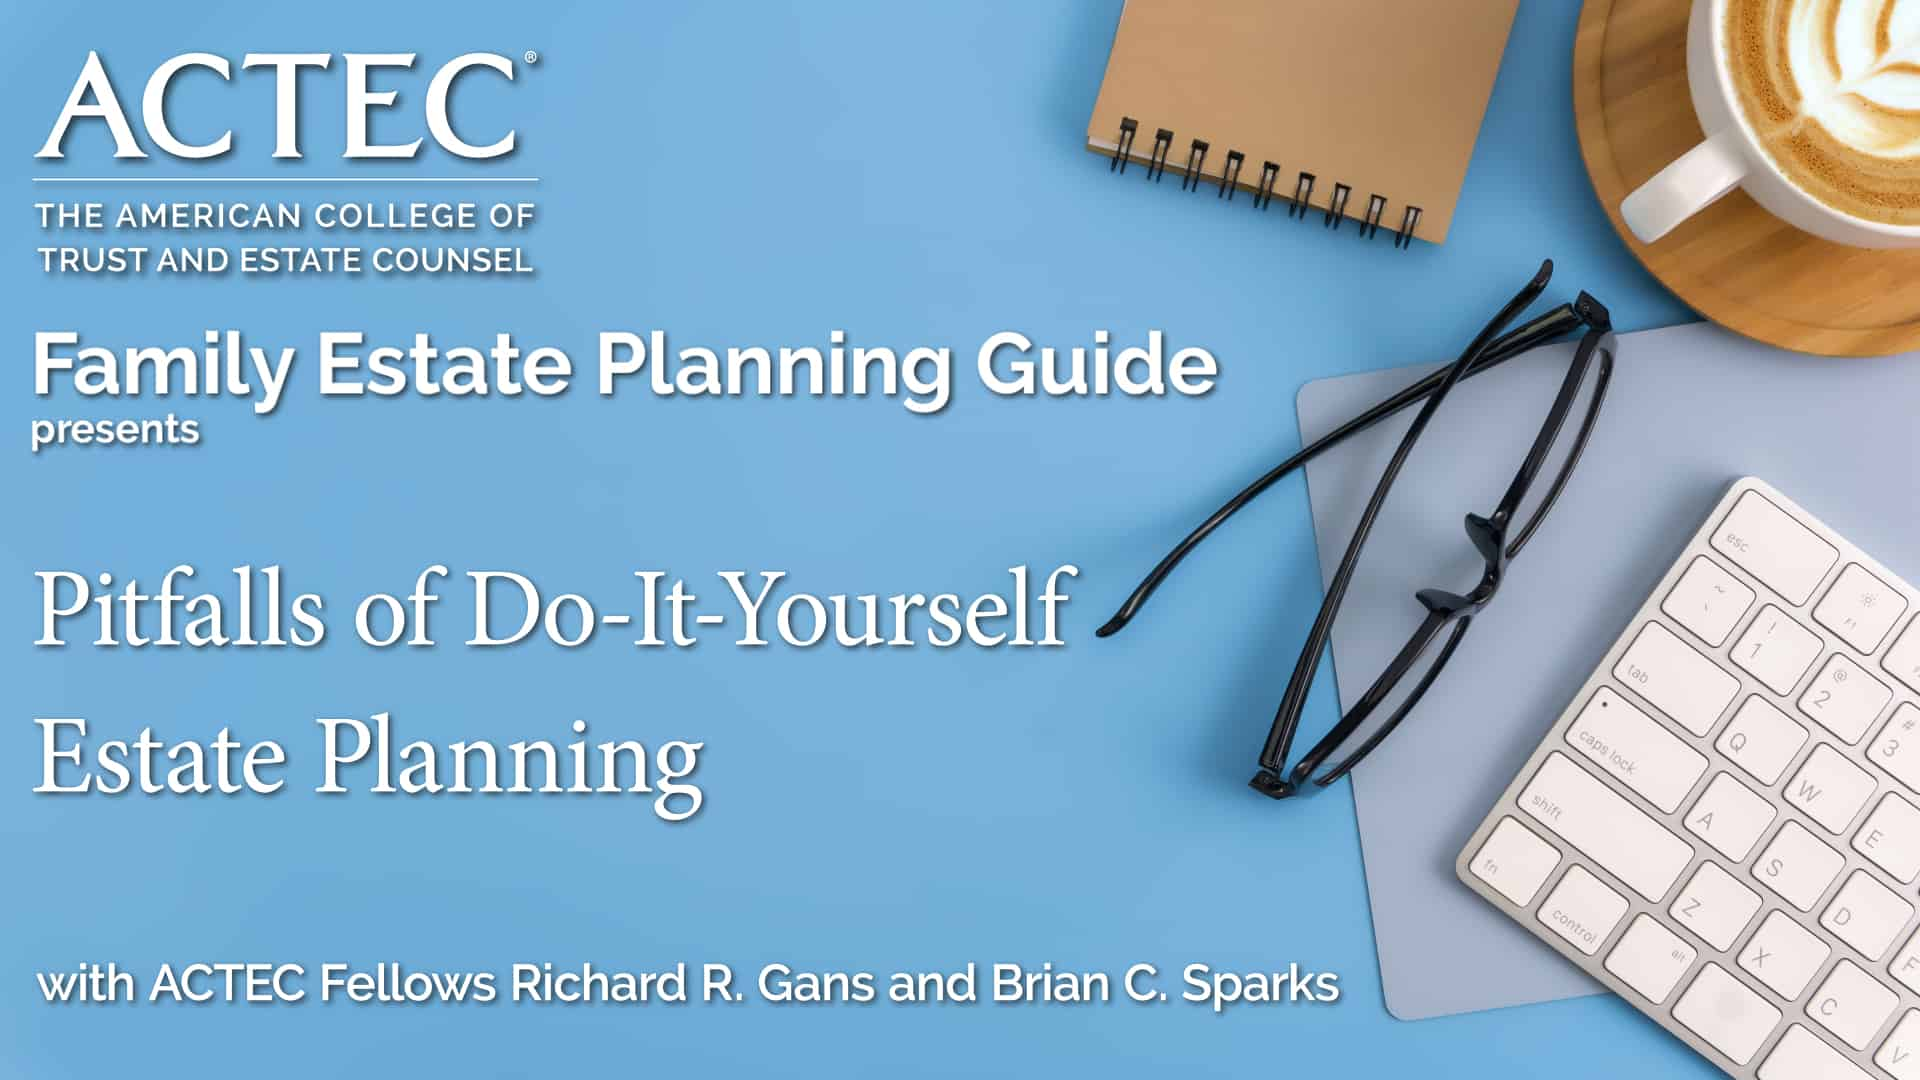 Pitfalls of Do-It-Yourself Estate Planning